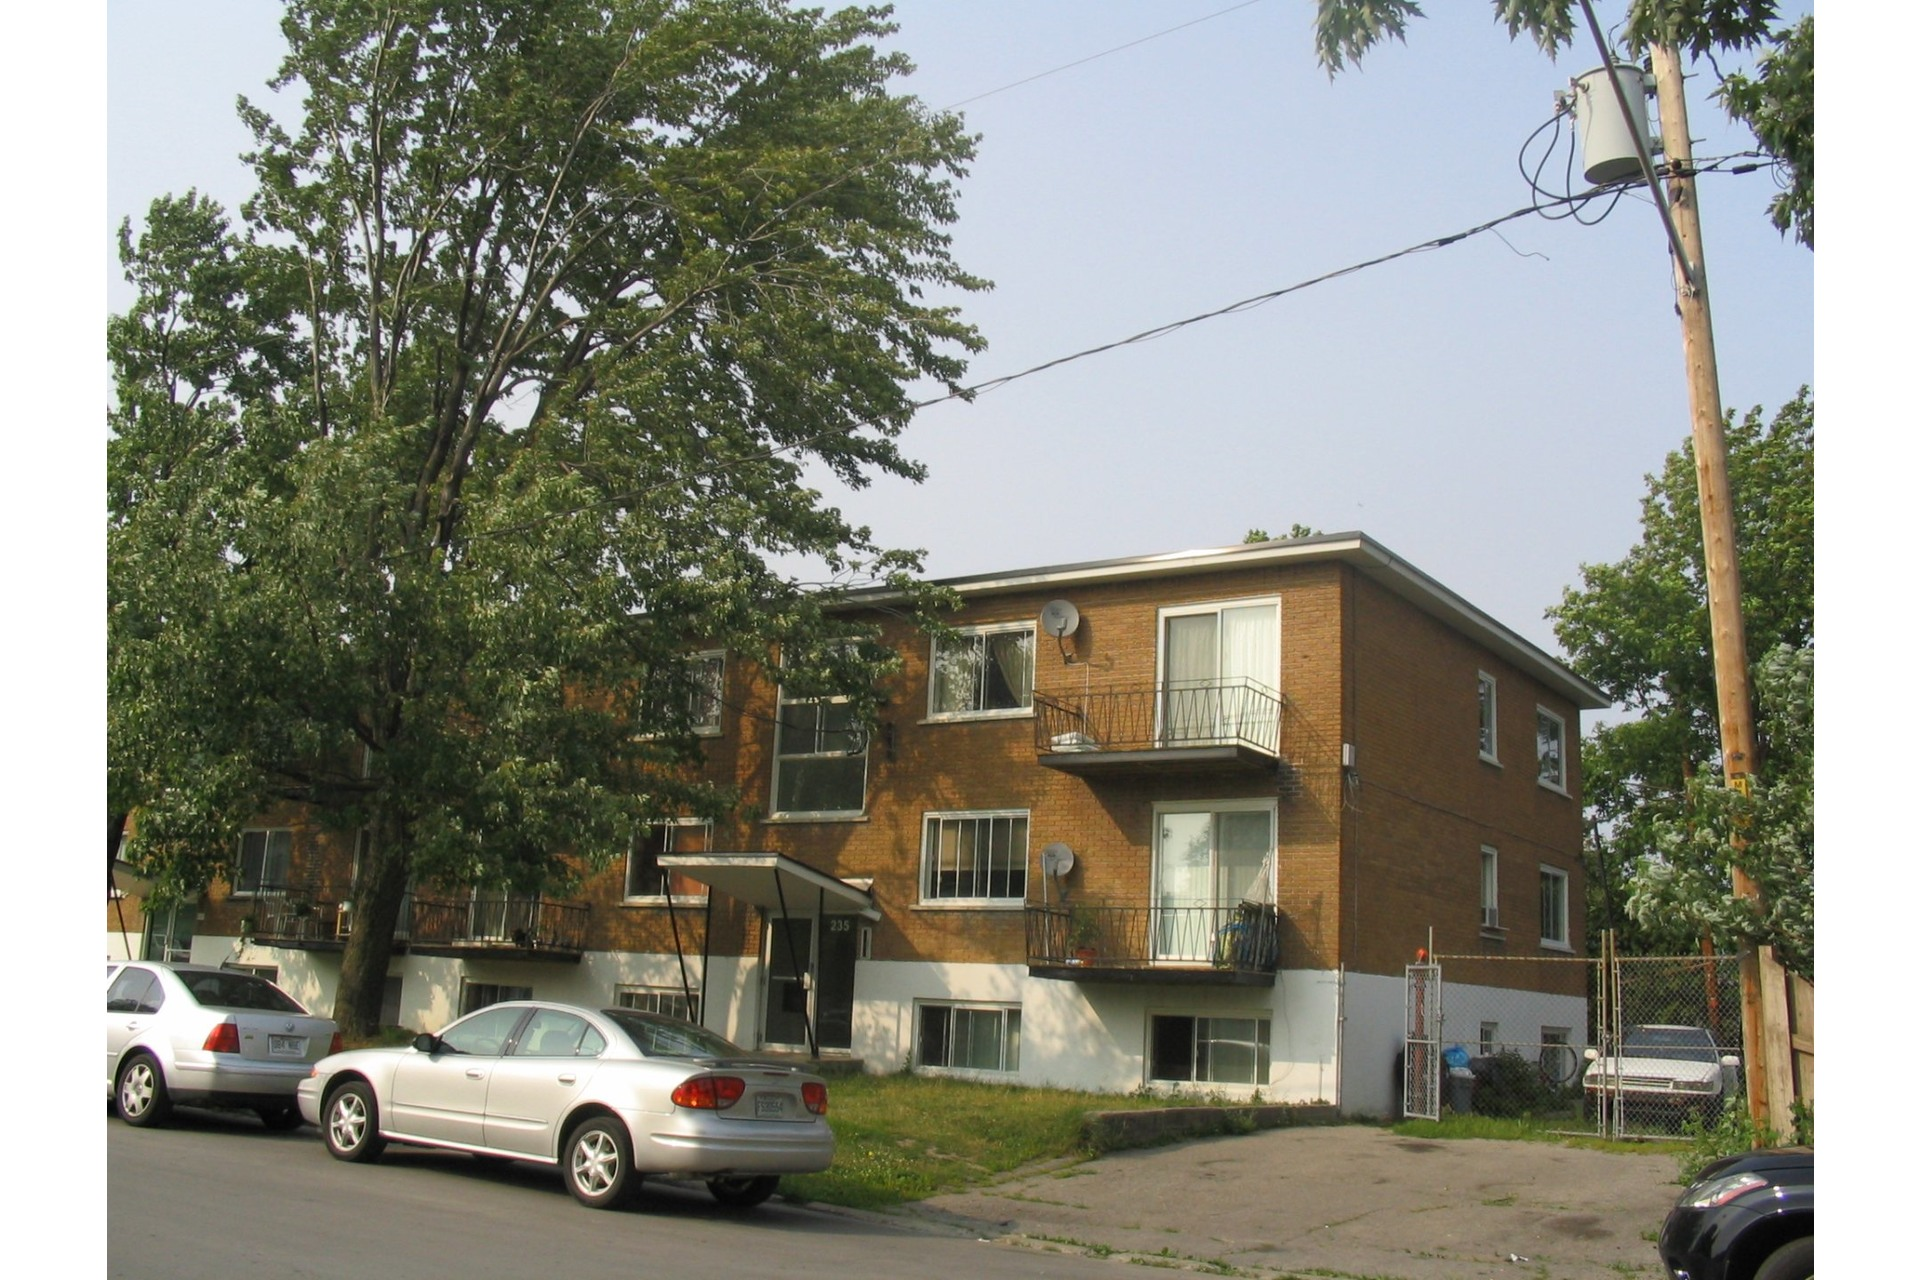 image 9 - Income property For sale Duvernay Laval  - 5 rooms